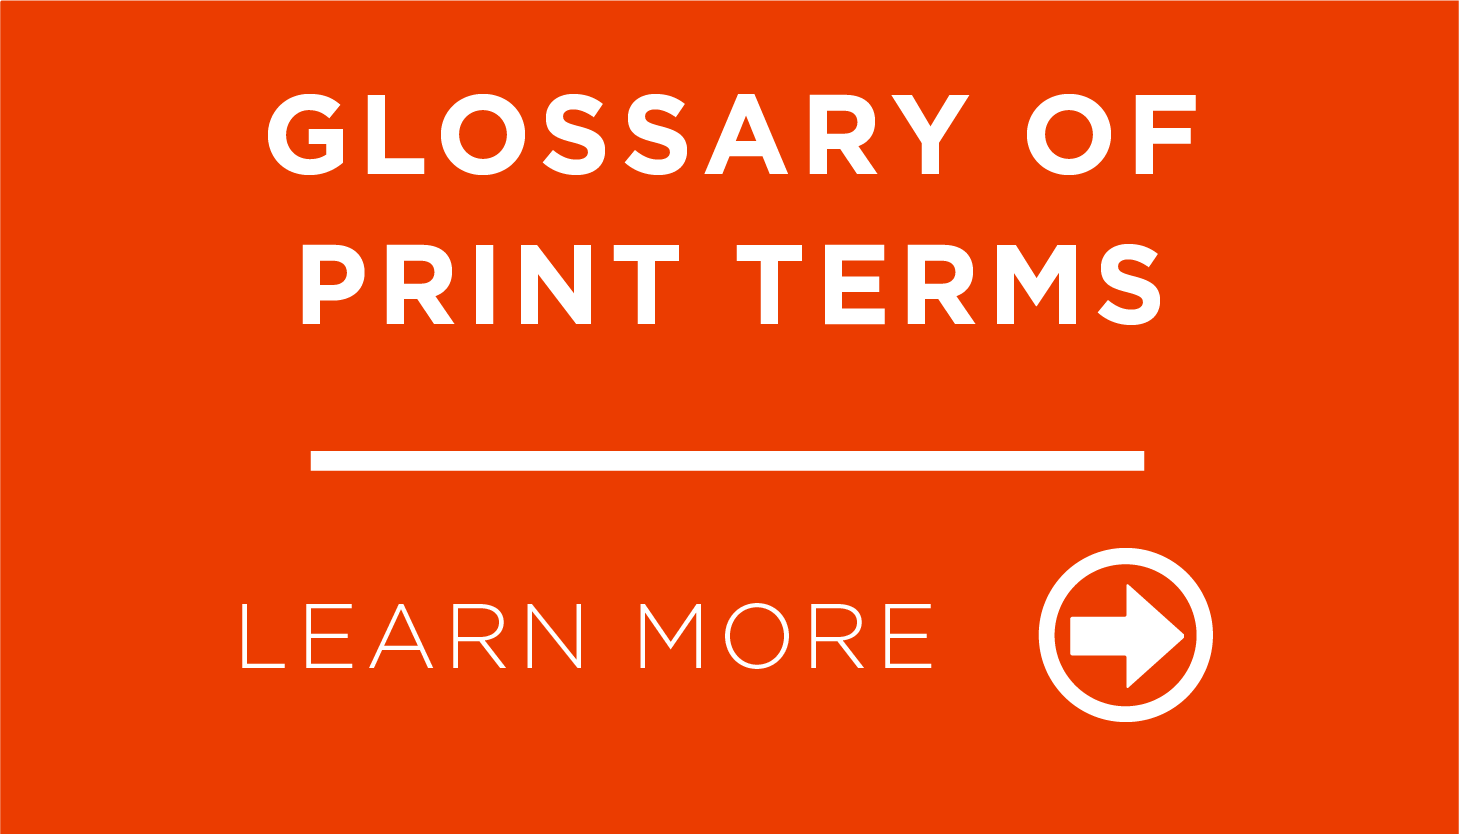 Glossary of Print Terms